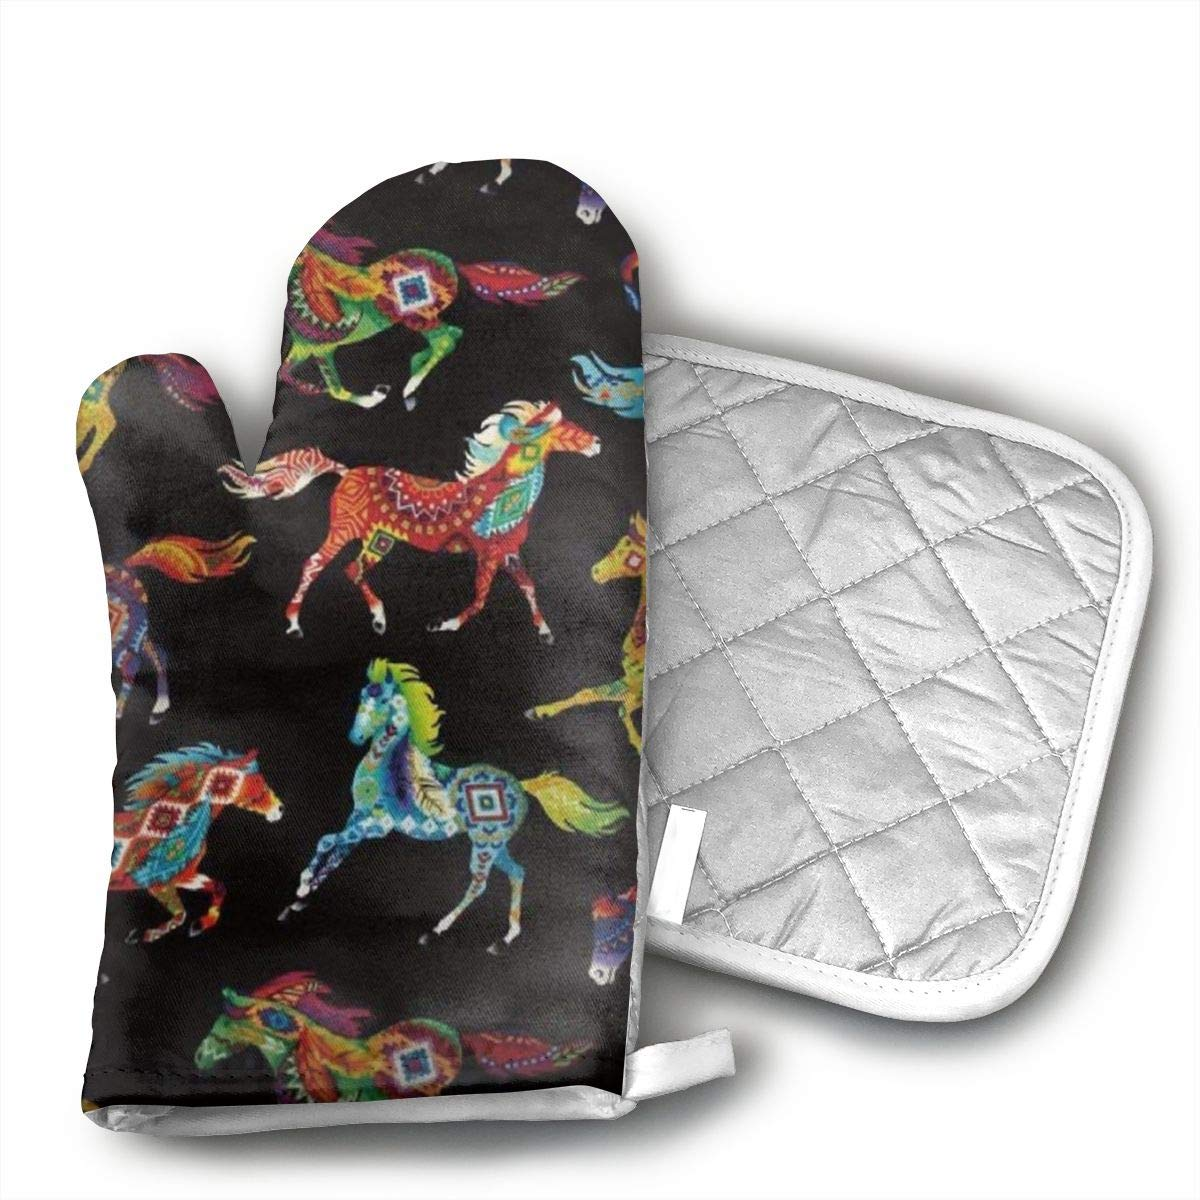 QEDGC Out West Southwest Horses Brite Oven Mitt and Pot Holder or Oven Gloves-100% Cotton, High Heat Resistance,